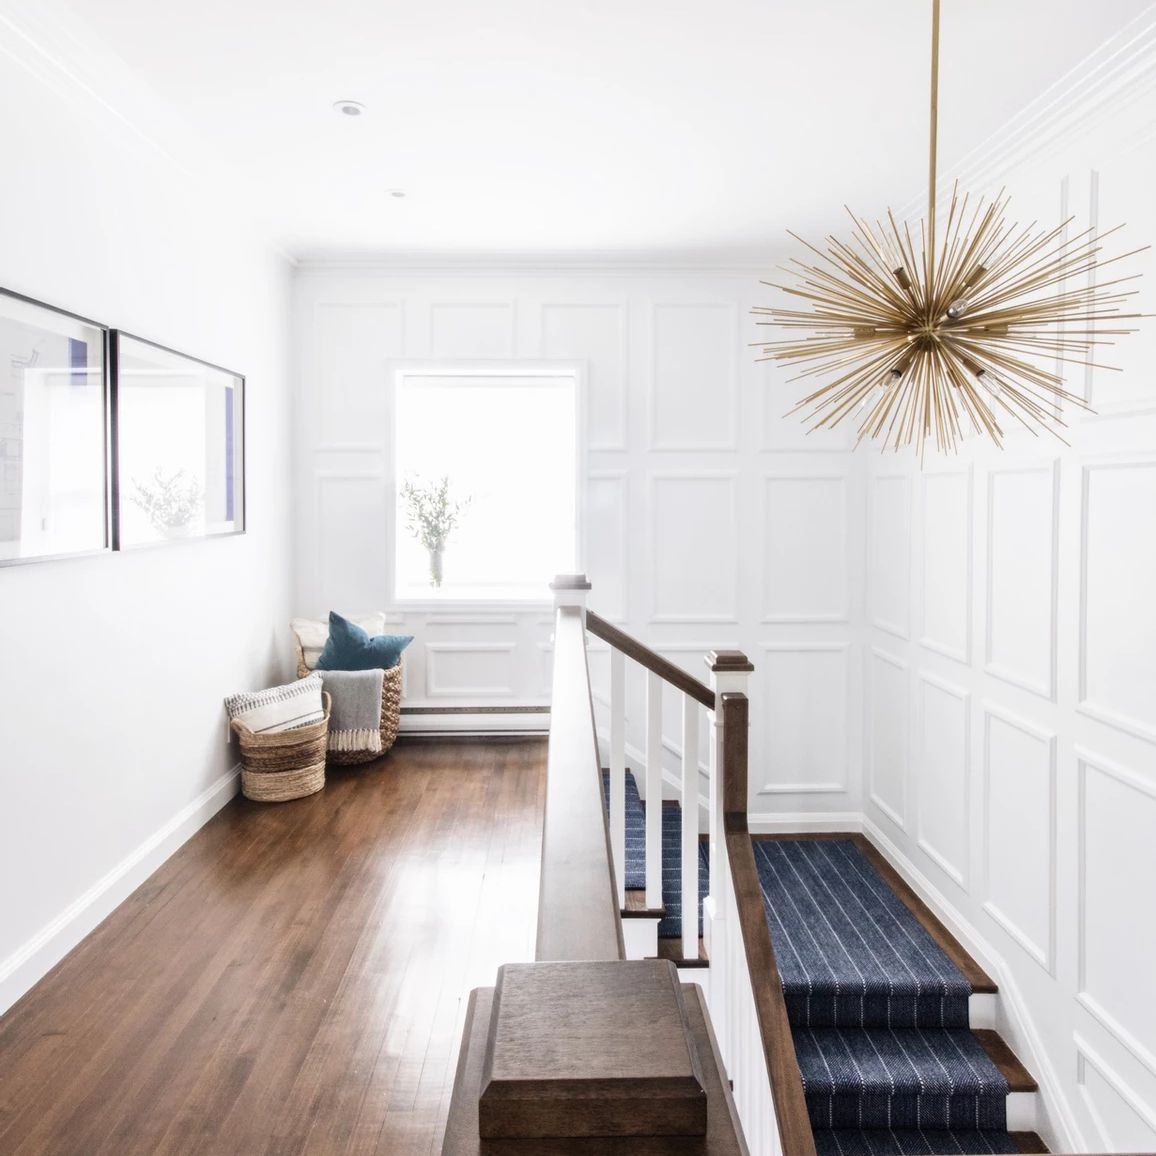 Hallway with white wood panneling